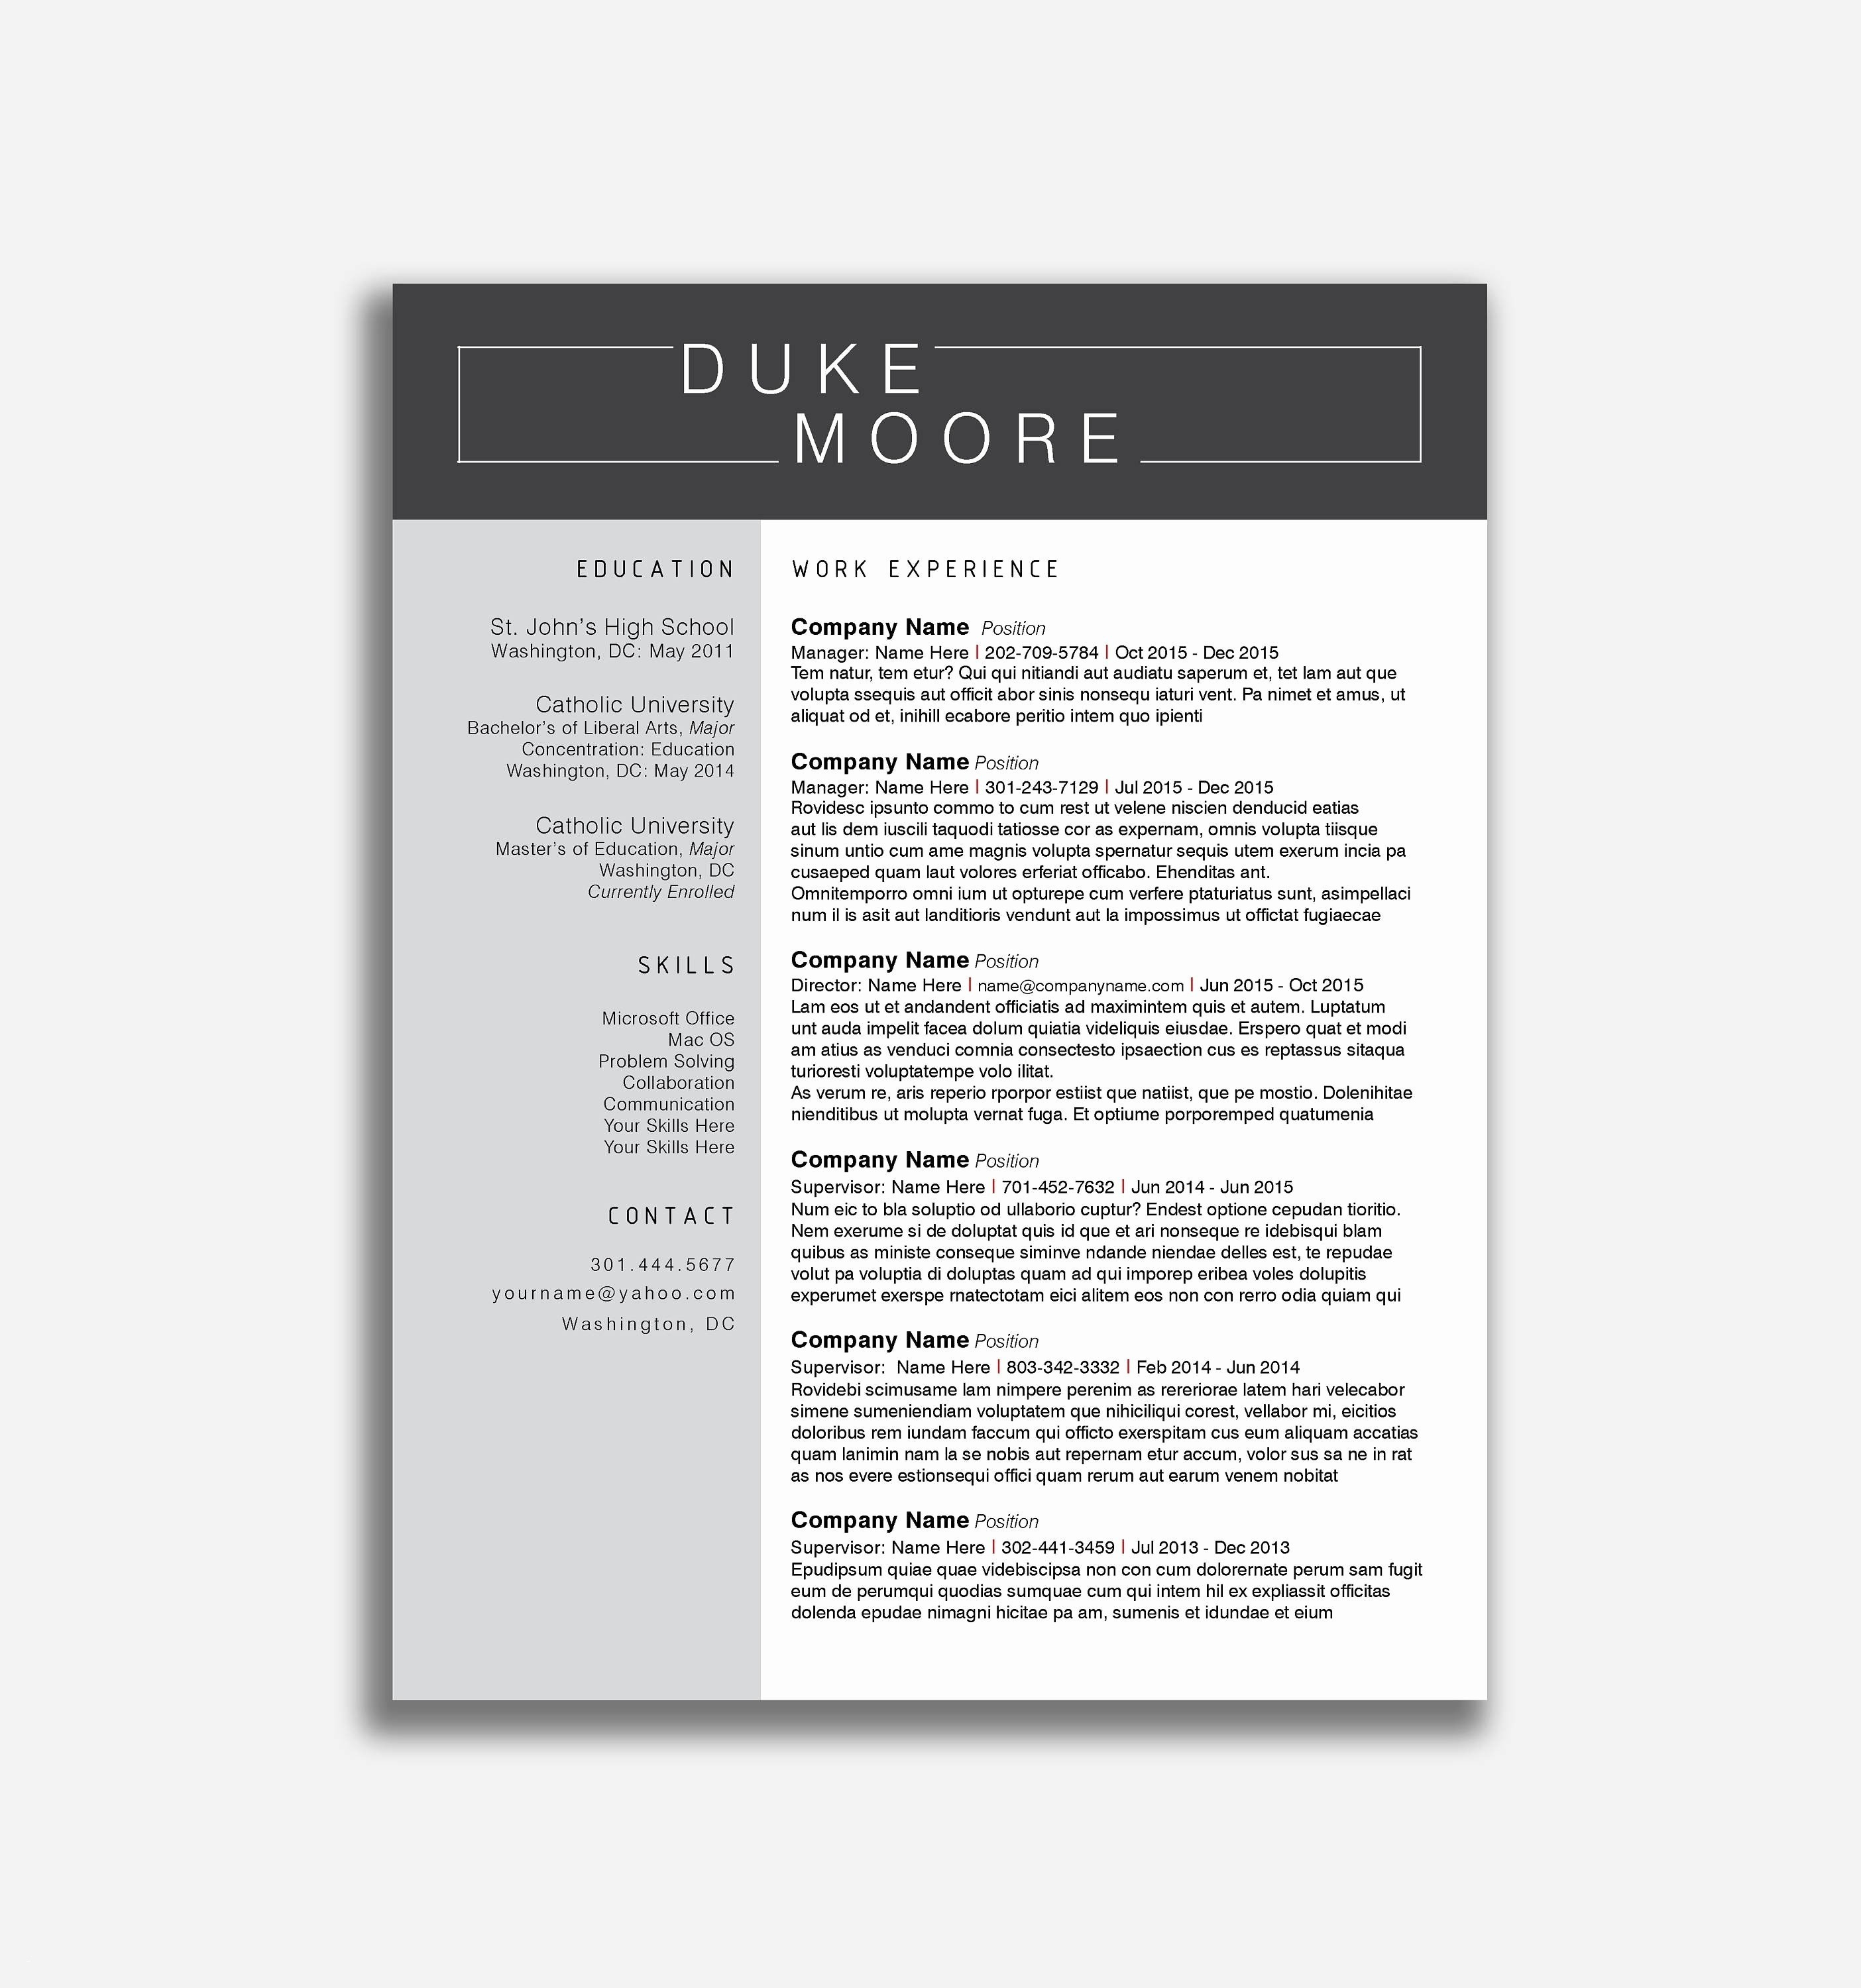 Resume Template Pages Mac - Resume Templates for Mac Valid Microsoft Word Resume Template for